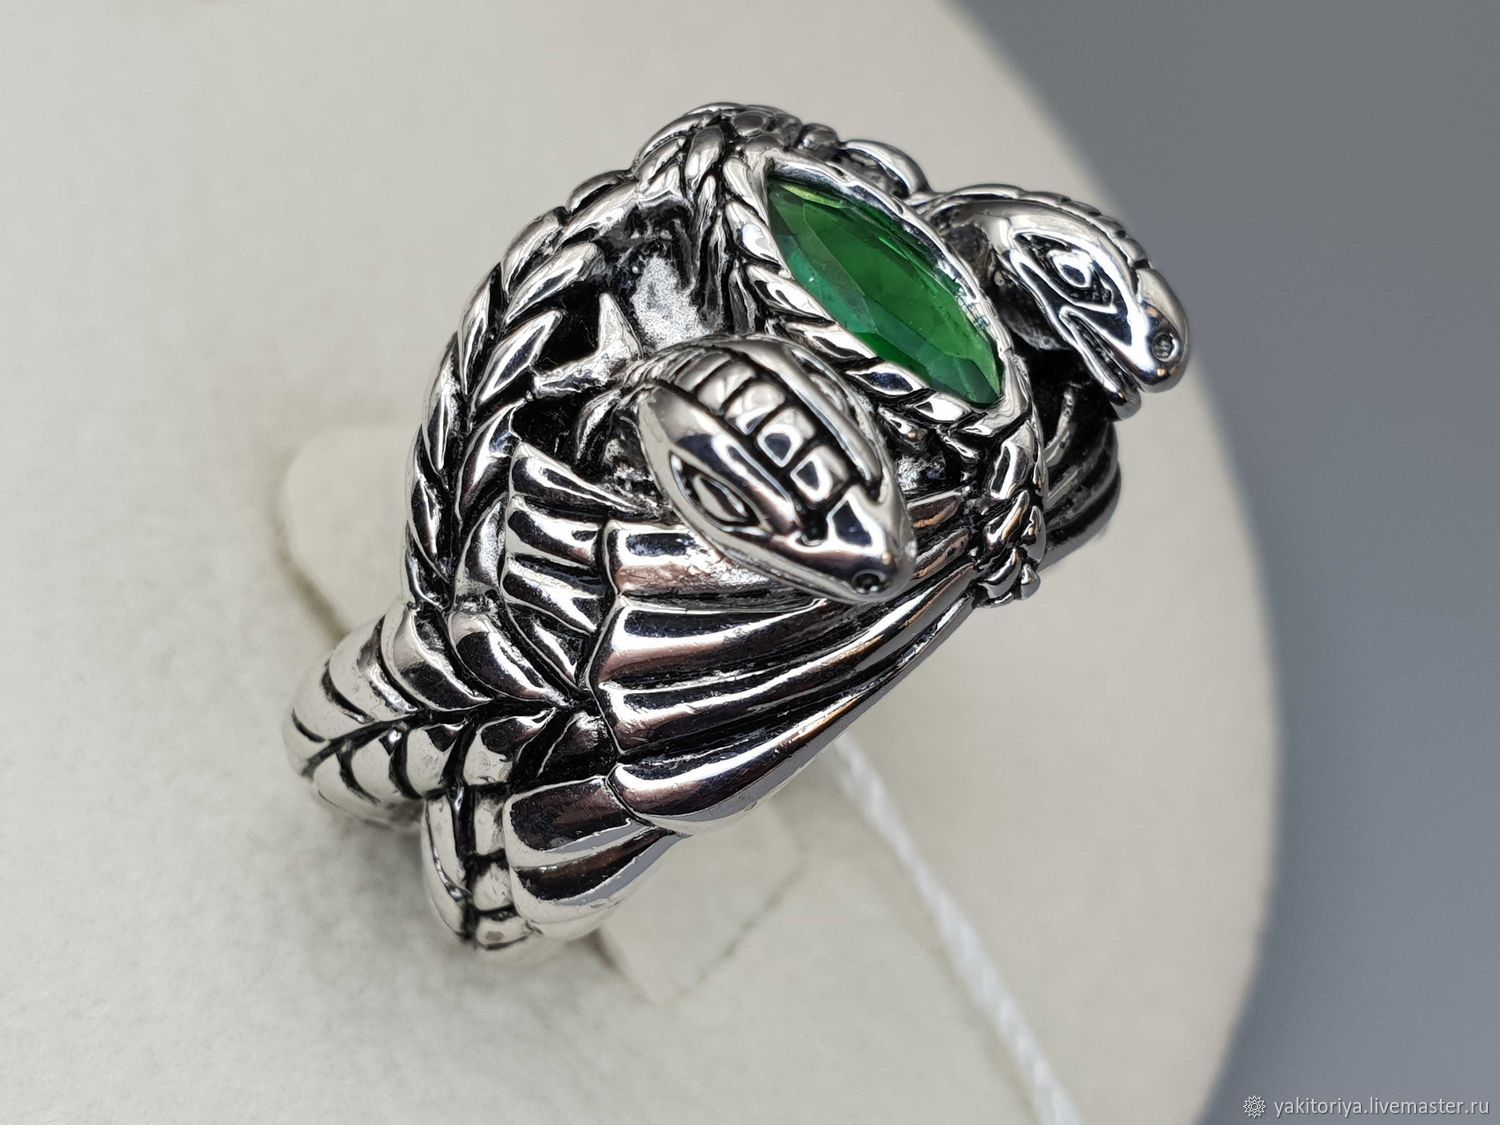 Silver ring with fluorite 8h4 mm, Rings, Moscow,  Фото №1